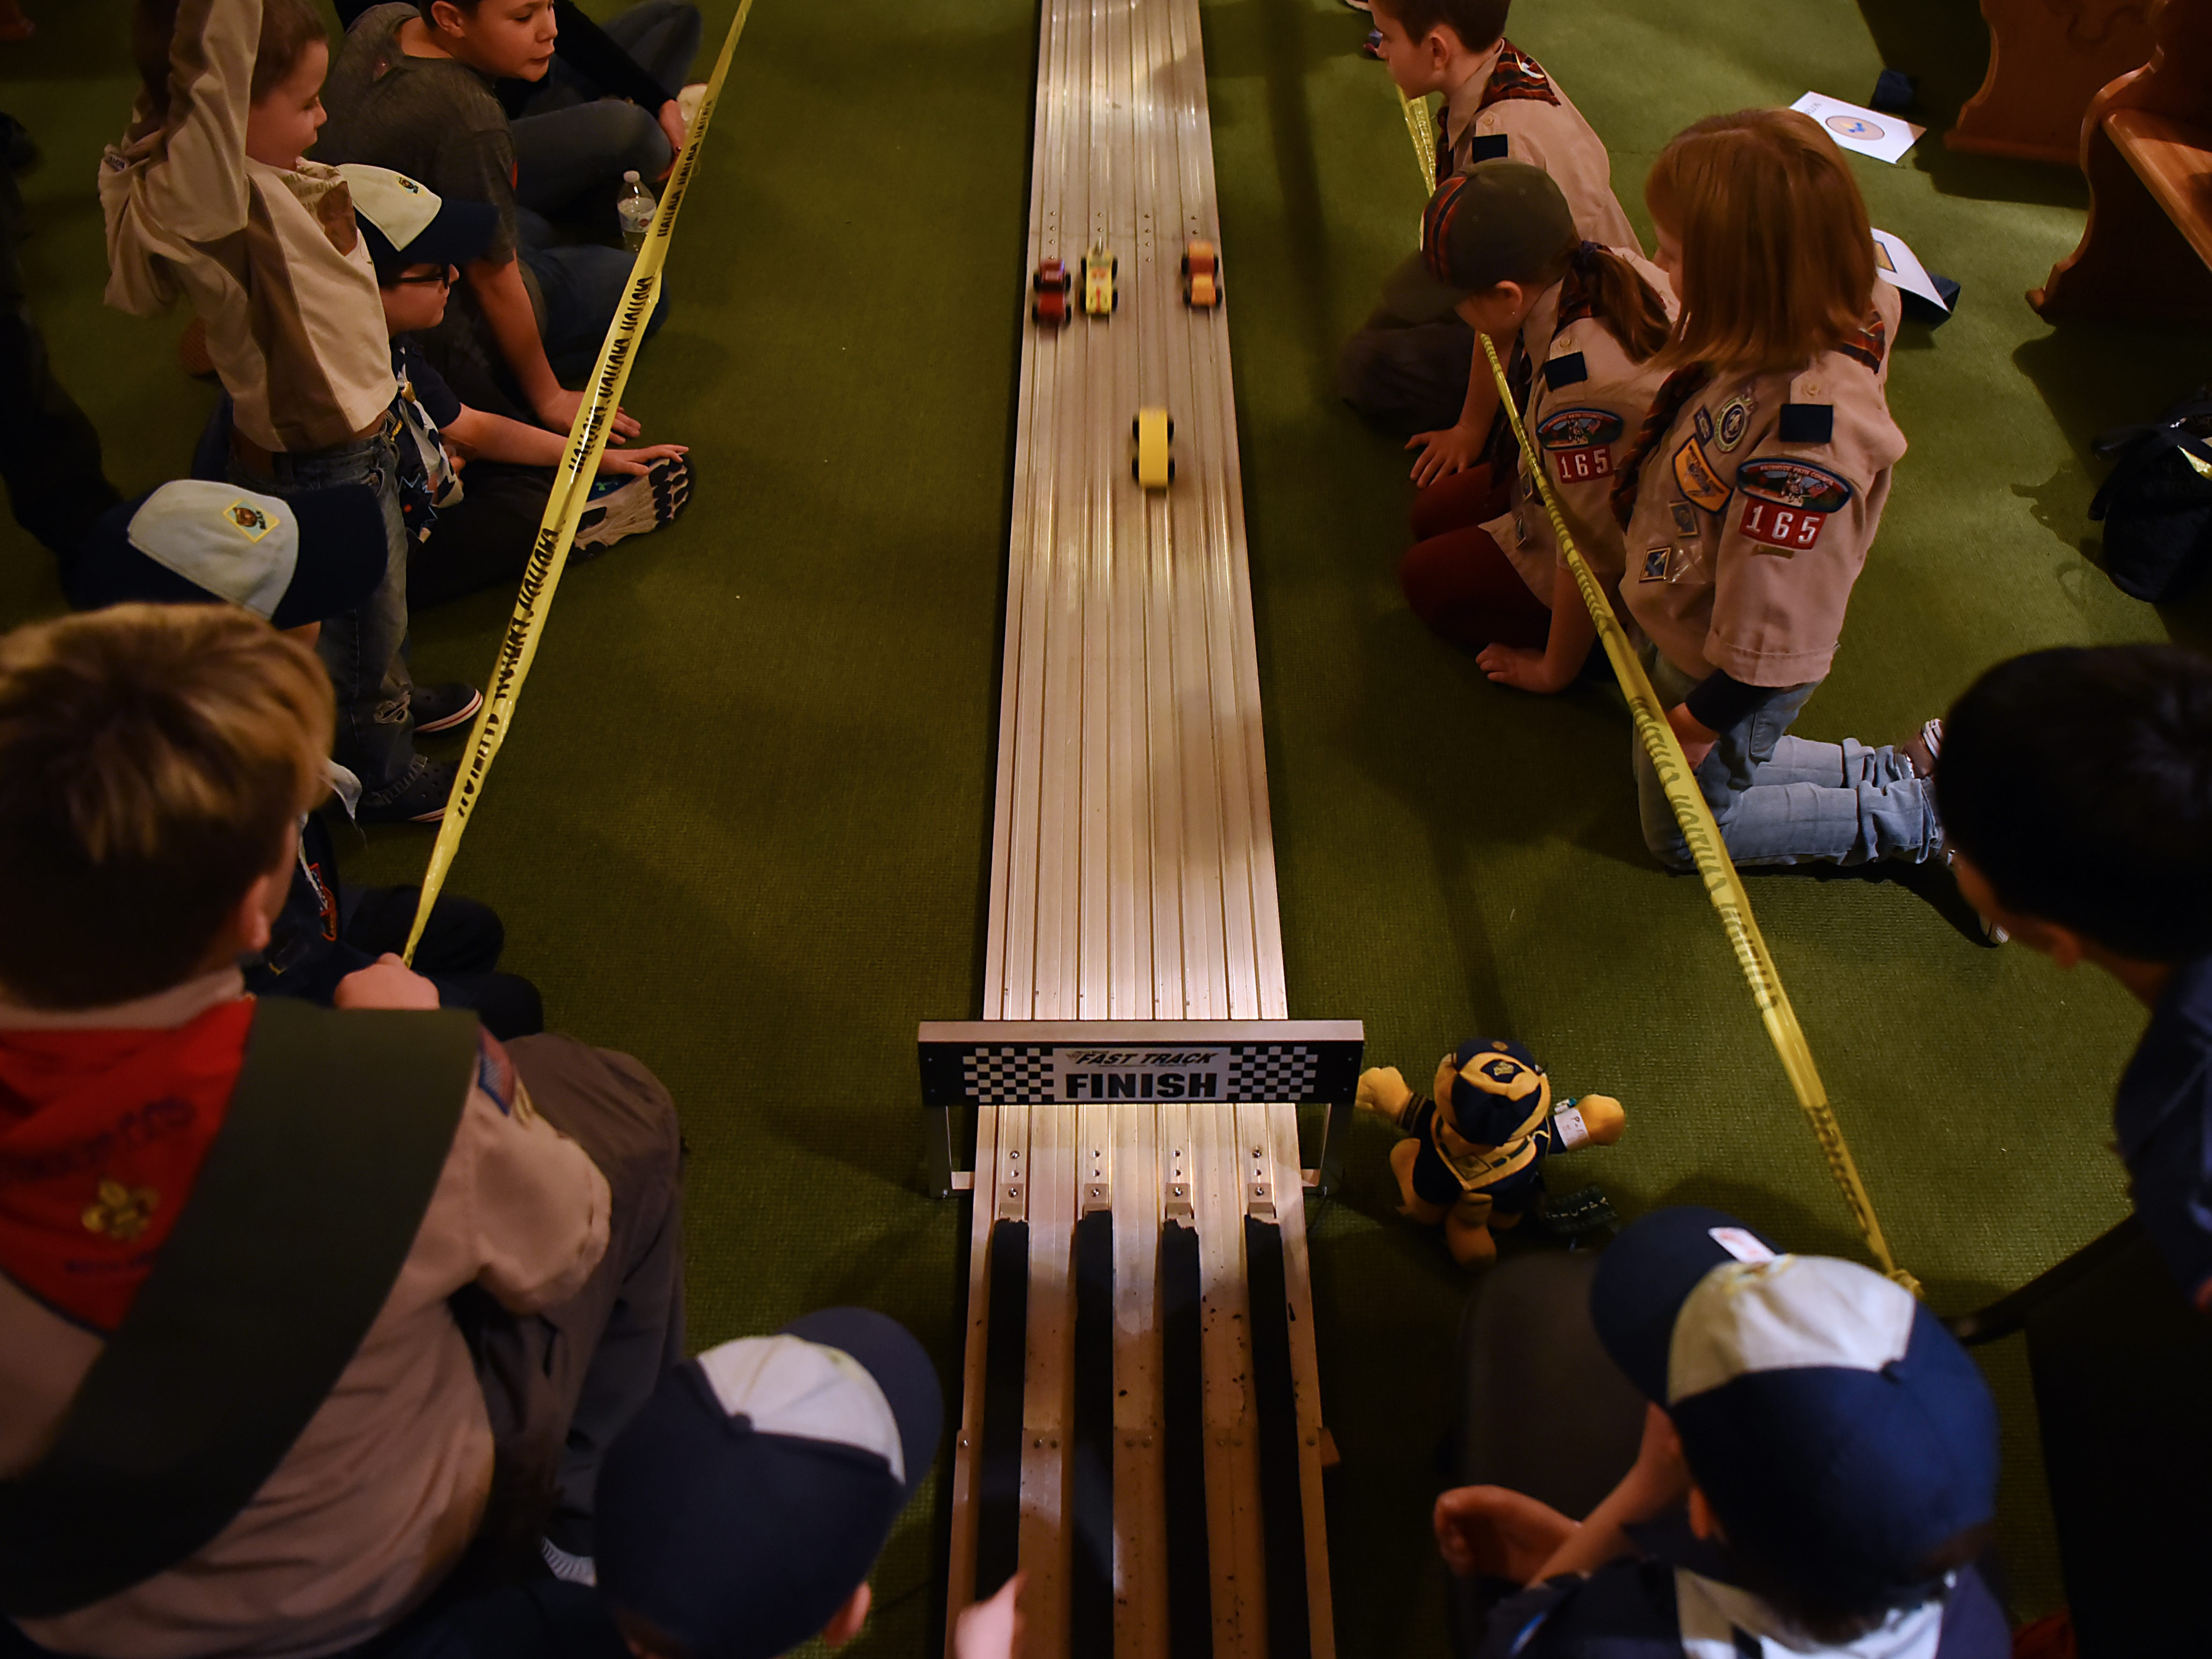 Cub Scouts watch the cars race to the finish line during the Morris County Pinewood Derby at Holy Trinity Lutheran Church in Rockaway on Friday January 18, 2019.